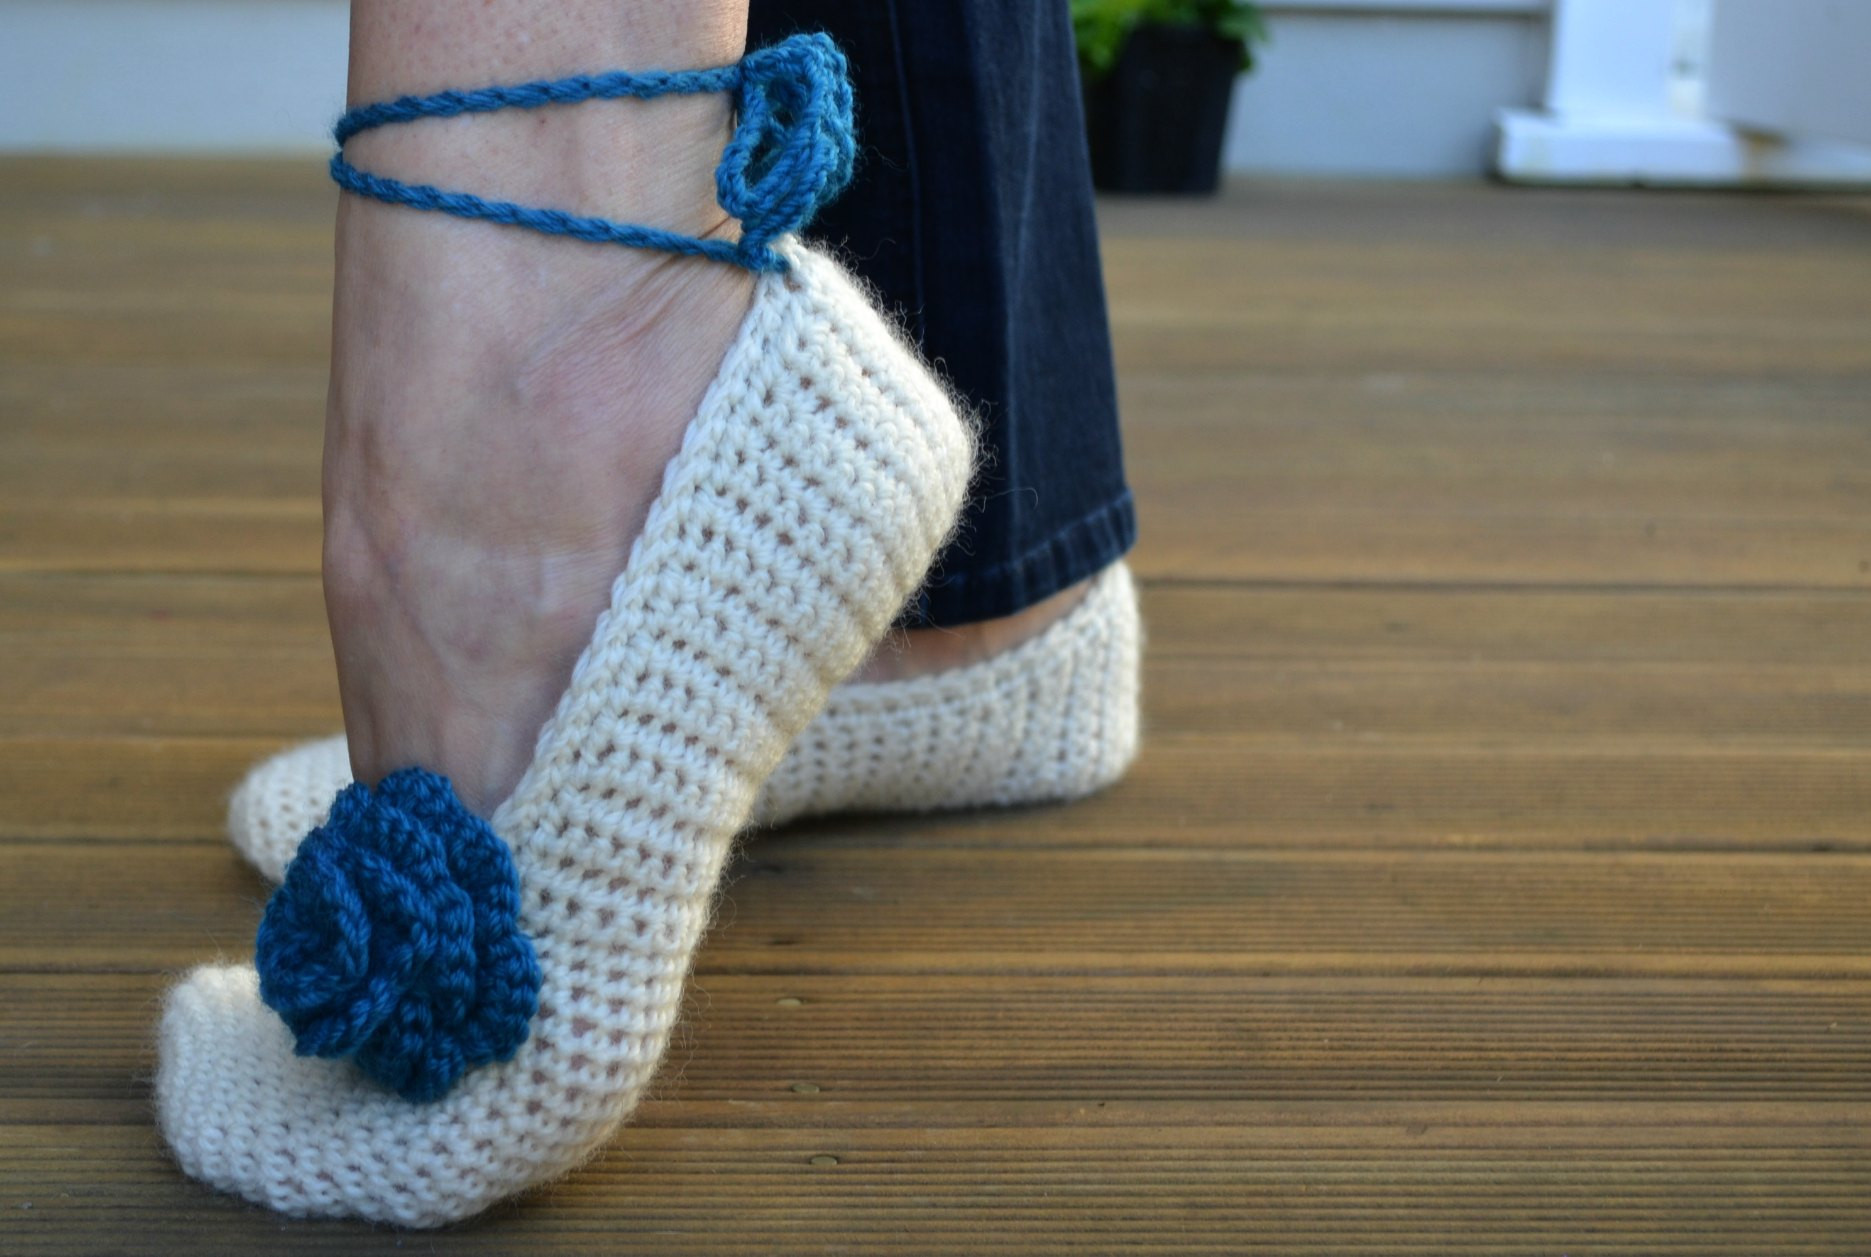 Crochet Boots Pattern Free Luxury Free Crochet Patterns for Slippers Beginners Of Amazing 44 Models Crochet Boots Pattern Free